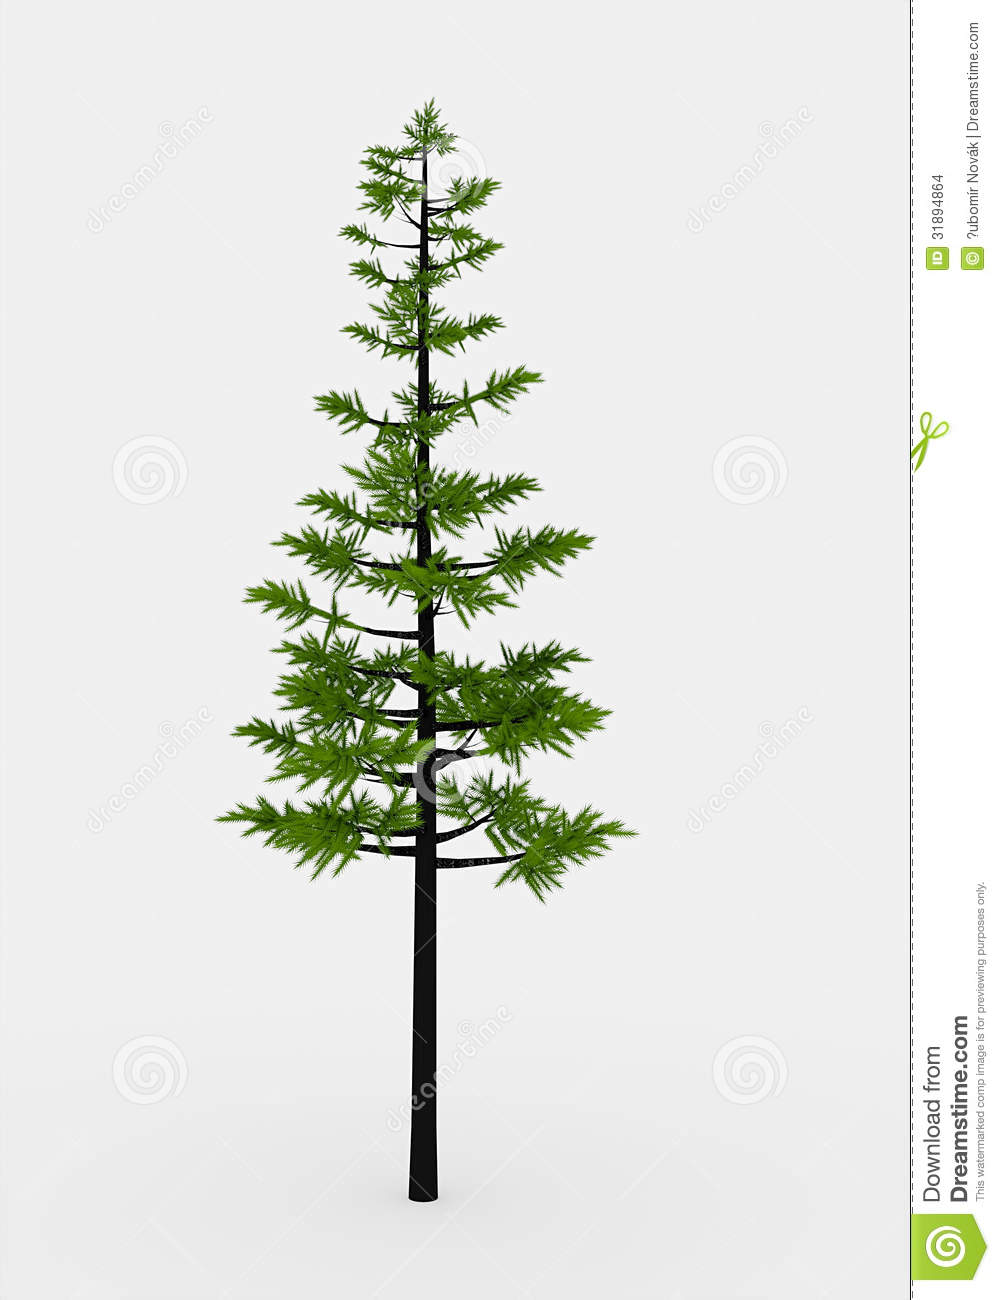 Conifer Tree Stock Images - Image: 31894864